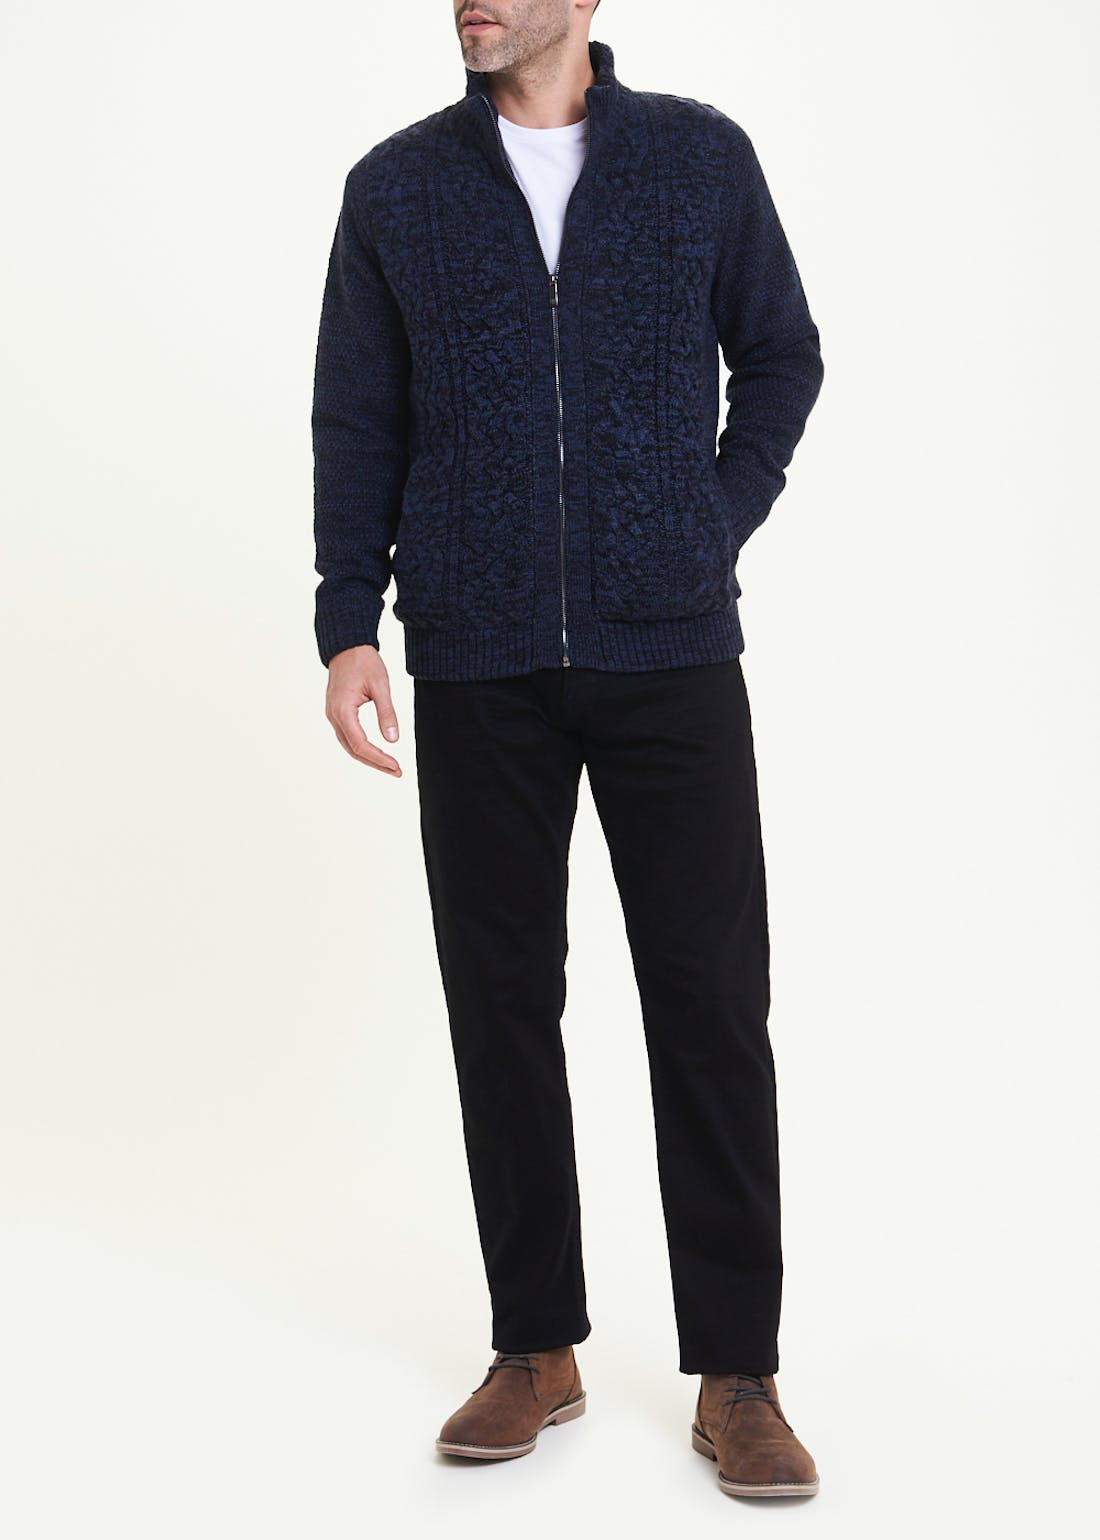 Lincoln Quilted Zip Up Jumper